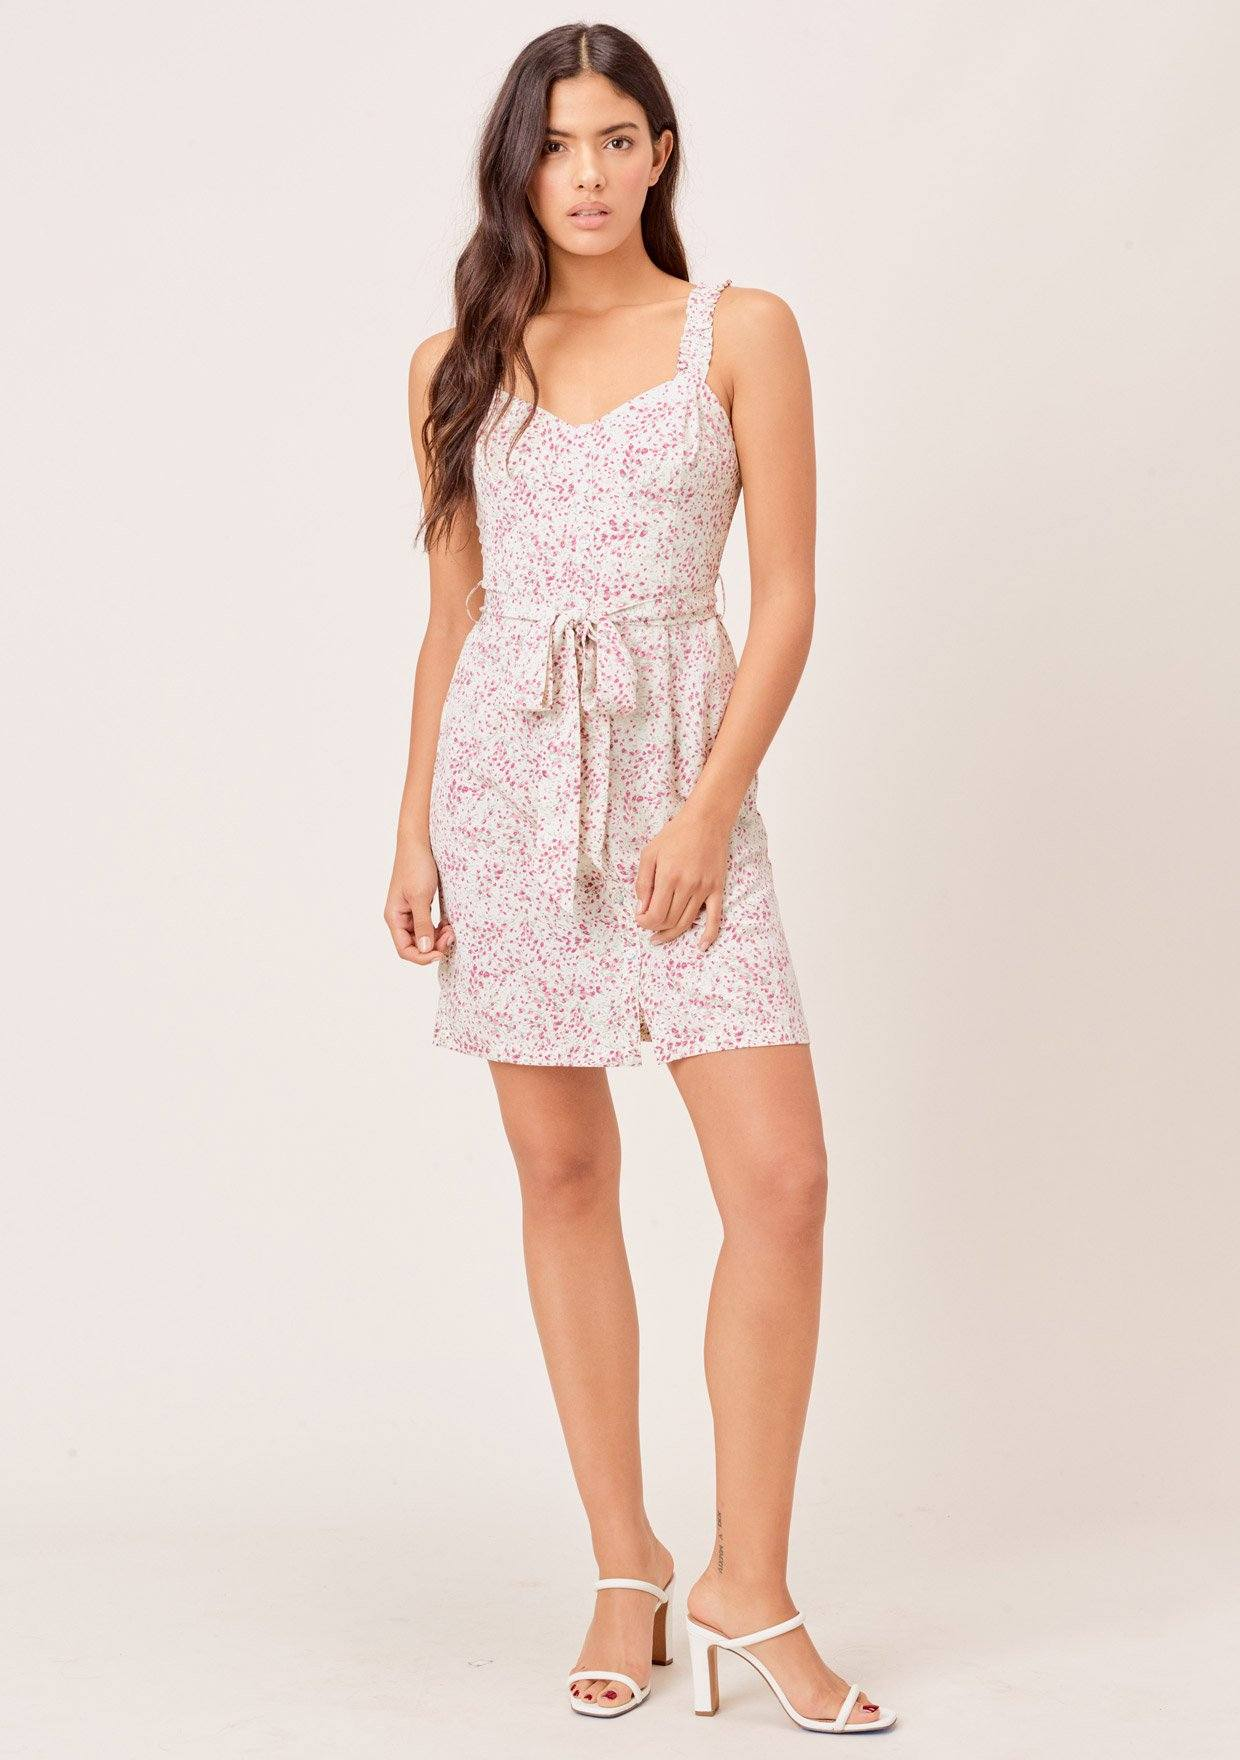 [Color: Ivory/Orchid] Lovestitch ivory/orchid Small tulip printed, belted, buttondown mini dress with shirred straps.